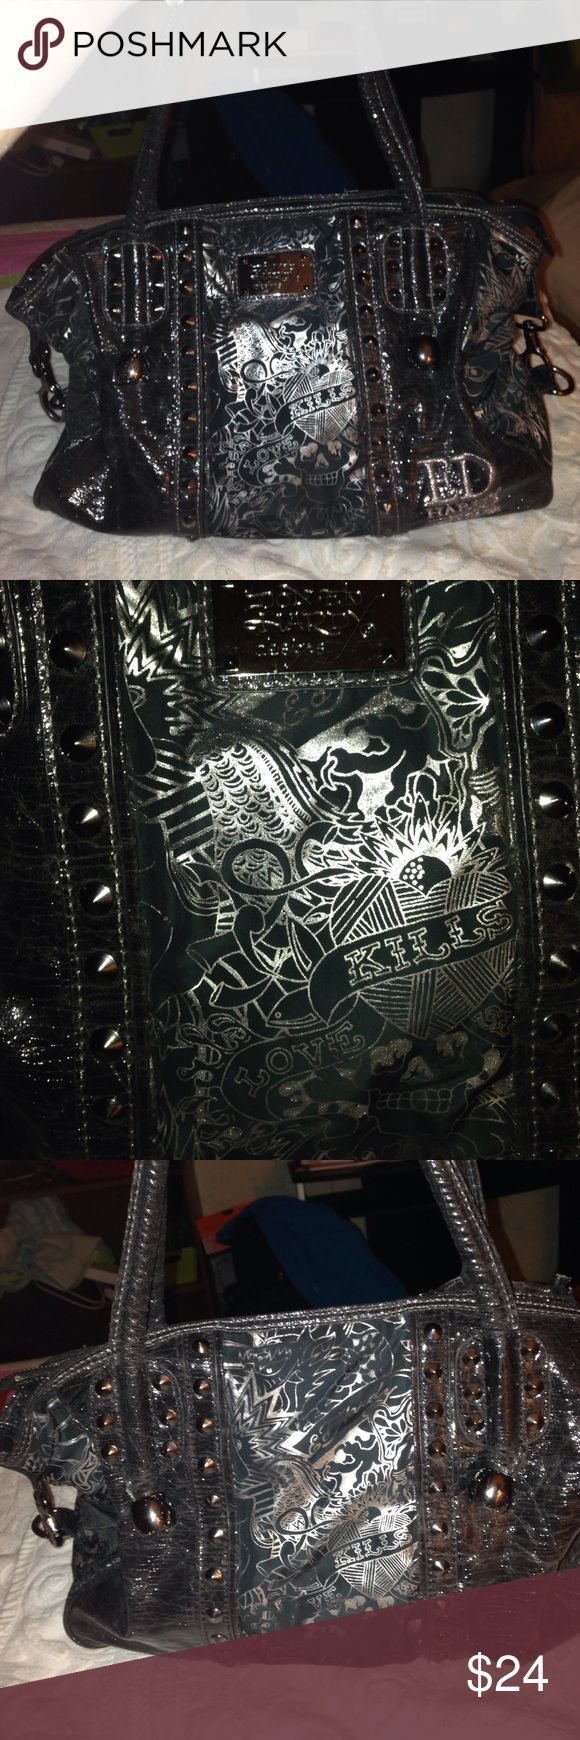 Don & Ed Hardy 7829 Melrose Handbag Satchel Black and silver large slouchy satchel/shoulder bag is in good, preowned condition.  Love Kills motif.  Three pockets inside and has Signature lining.  Cone studs decoration. Ed Hardy Bags Satchels